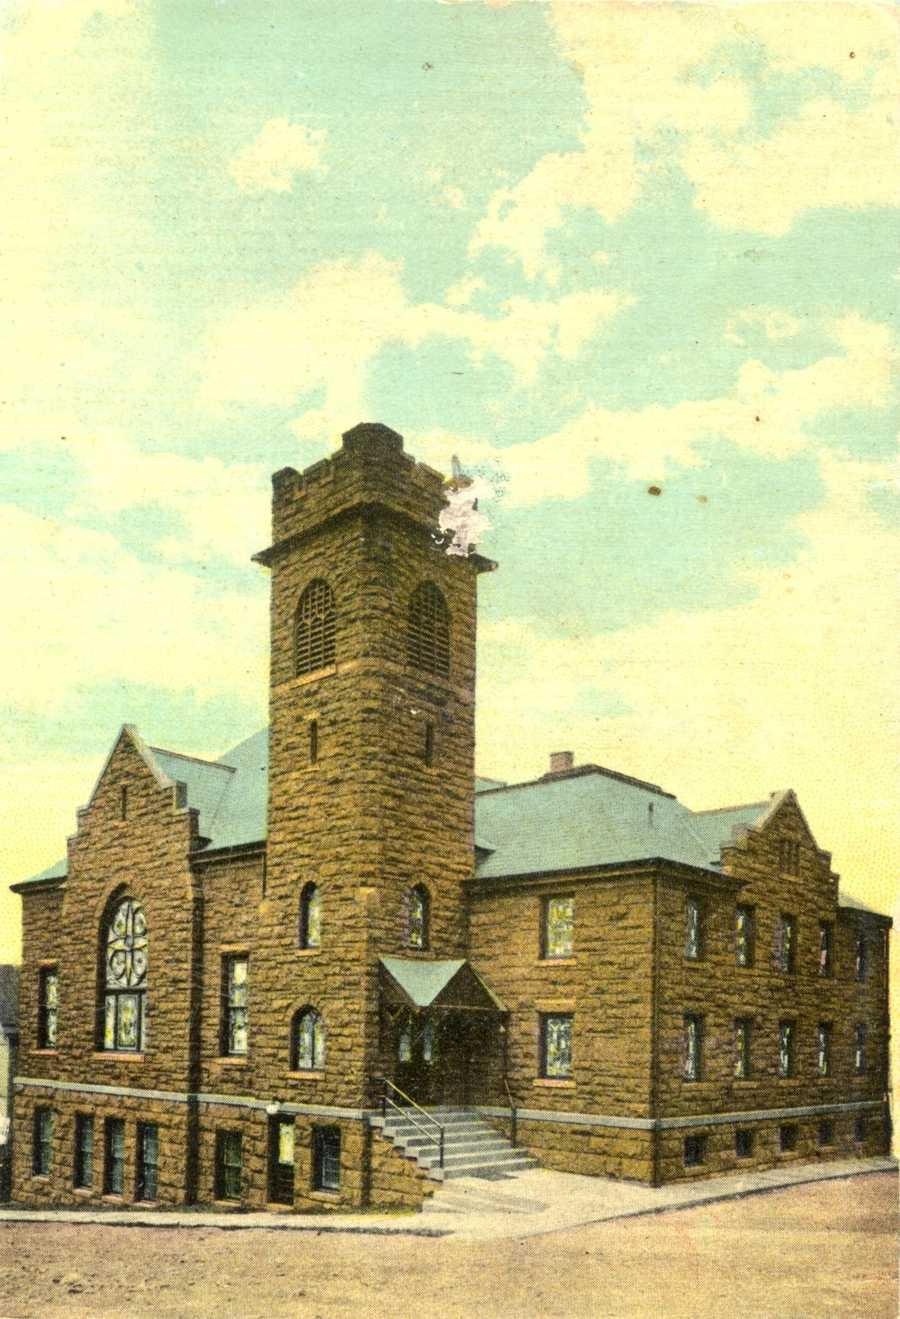 United Presbyterian Church on the corner of 4th and Maple Streets in Irwin, now known as United Presbyterian Church of the Covenant